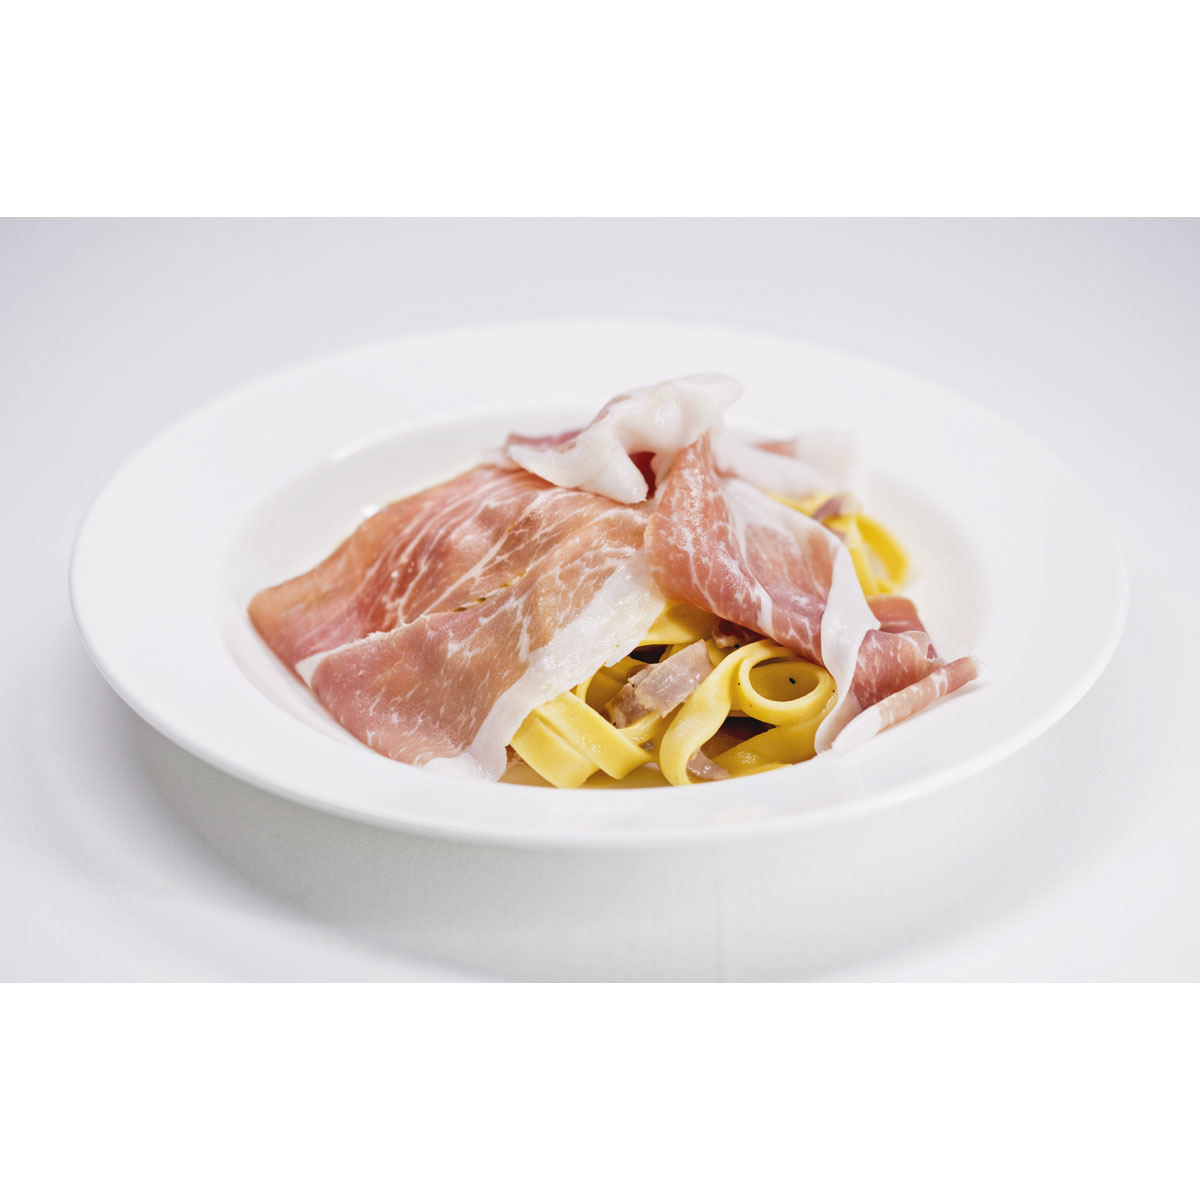 Tagliatelle with Grana Padano cheese and prosciutto di San Daniele